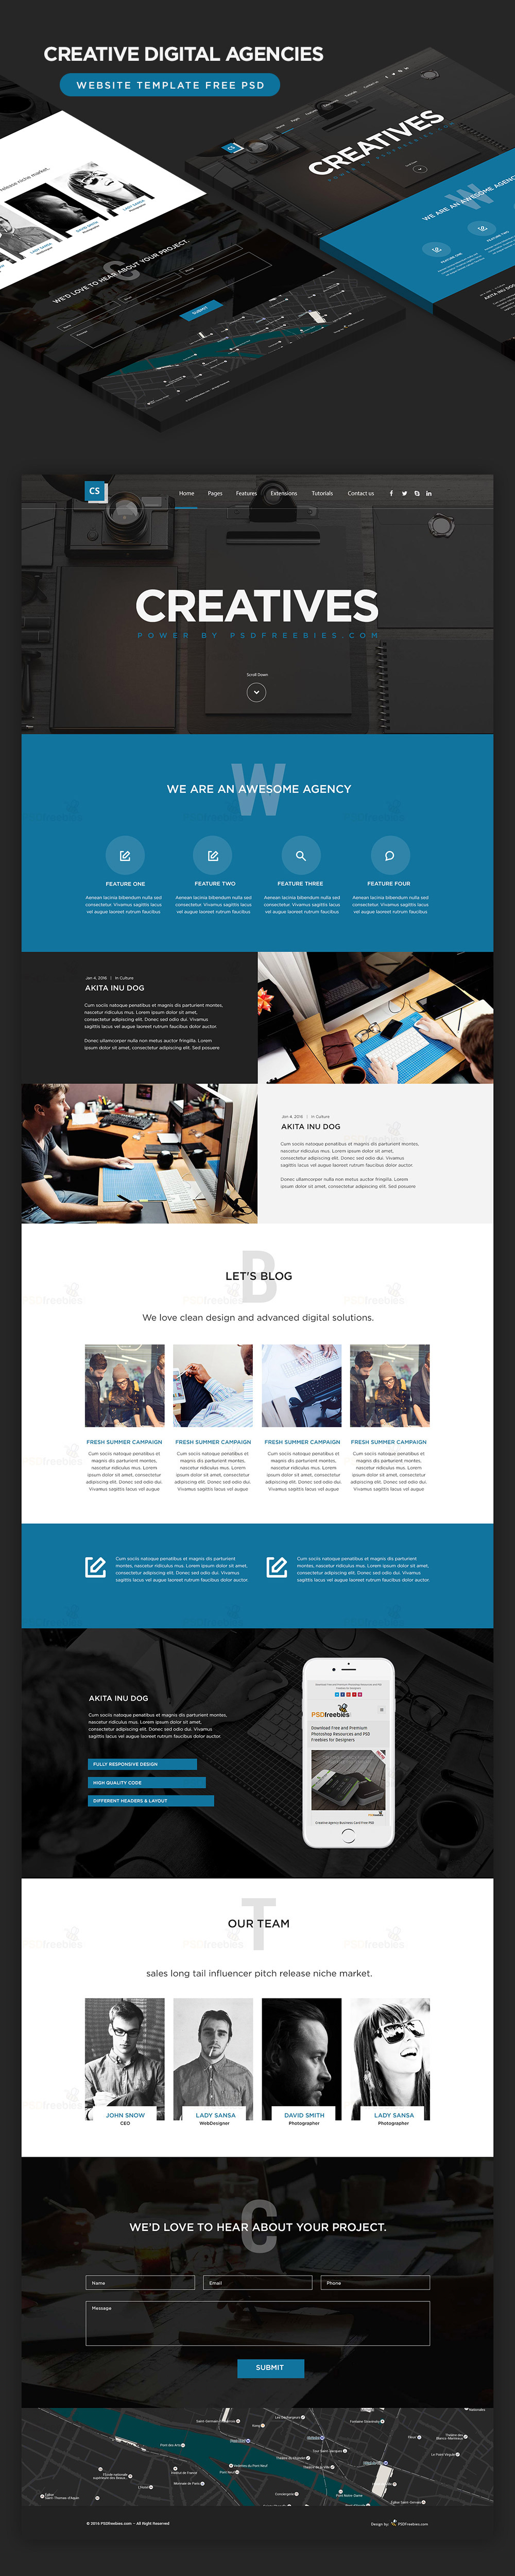 High Quality Free Corporate And Business Web Templates PSD - Business card website template